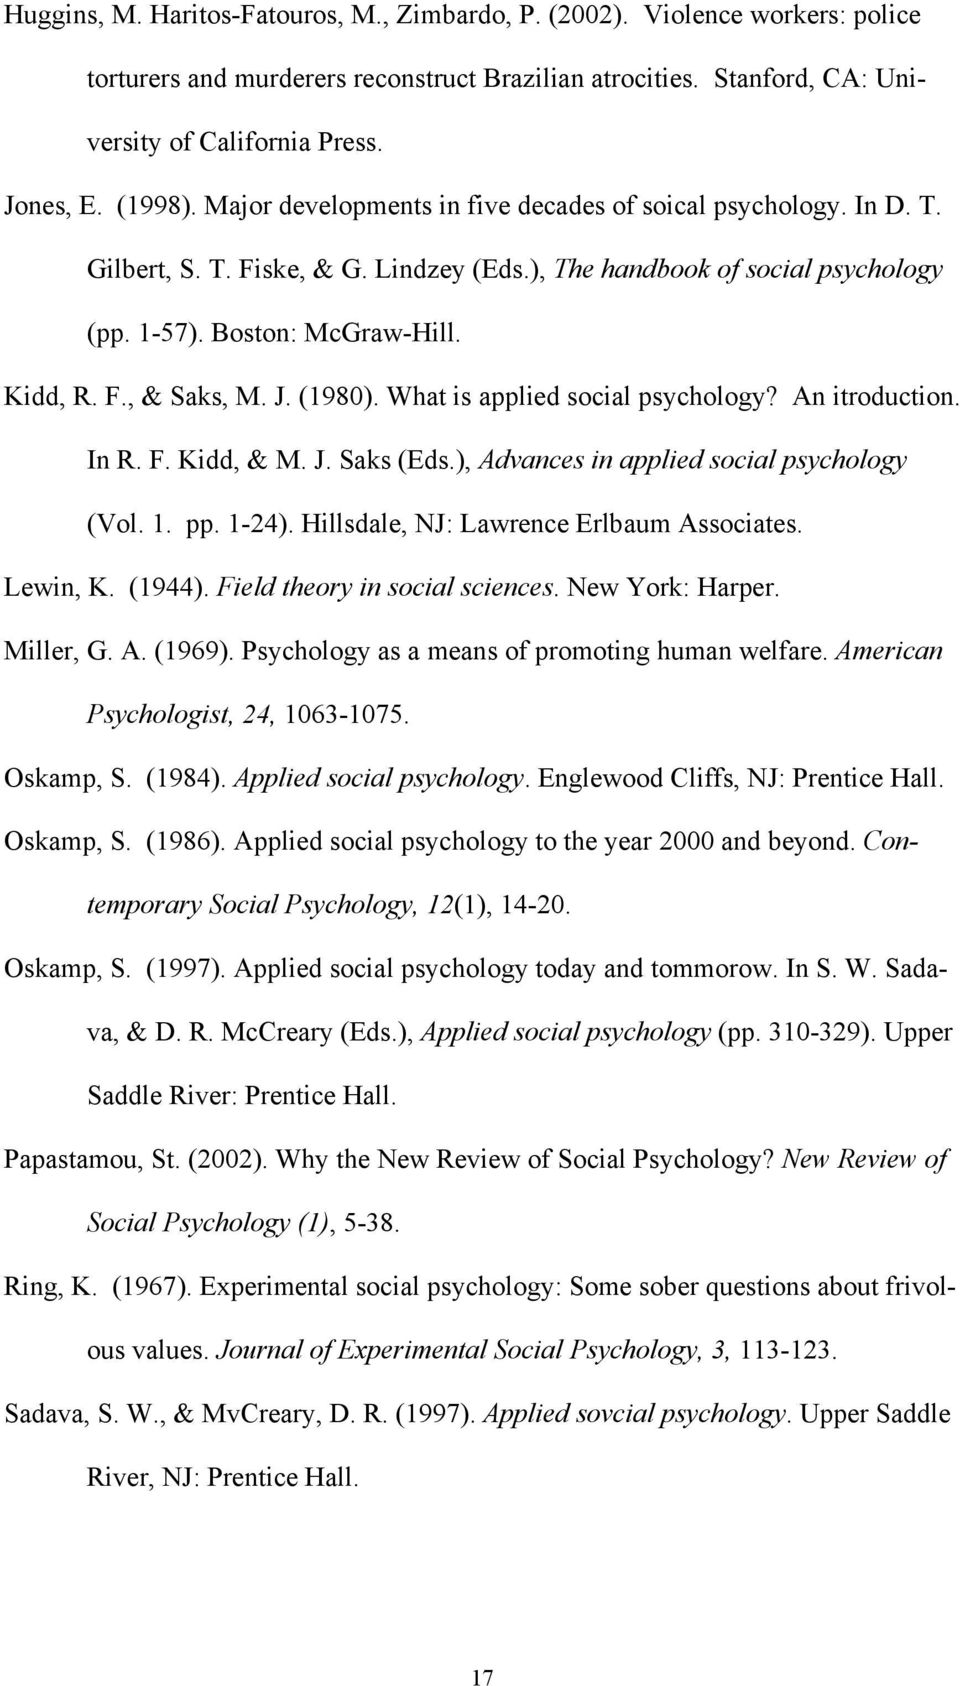 J. (1980). What is applied social psychology? An itroduction. In R. F. Kidd, & M. J. Saks (Eds.), Advances in applied social psychology (Vol. 1. pp. 1-24). Hillsdale, NJ: Lawrence Erlbaum Associates.